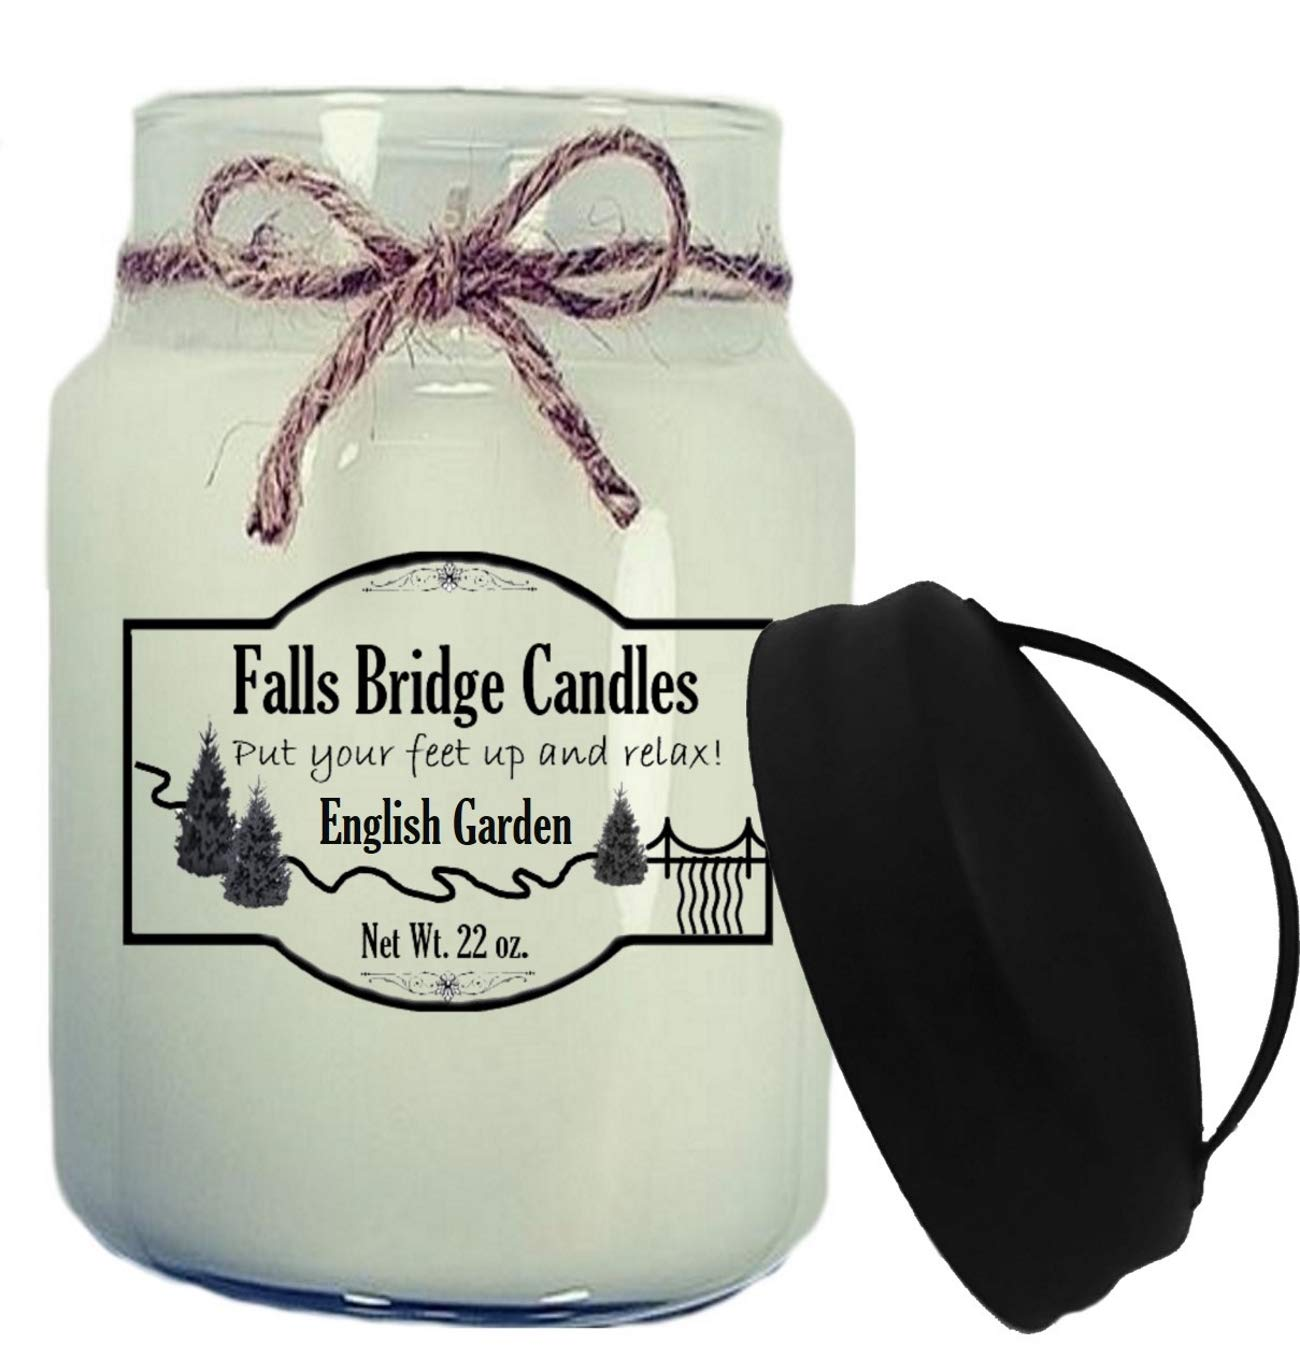 Falls Bridge Candles Enggdn26 English Garden Paraffin Wax Scented Jar Candle W Handle Lid 22 Oz Jar Candles Candles